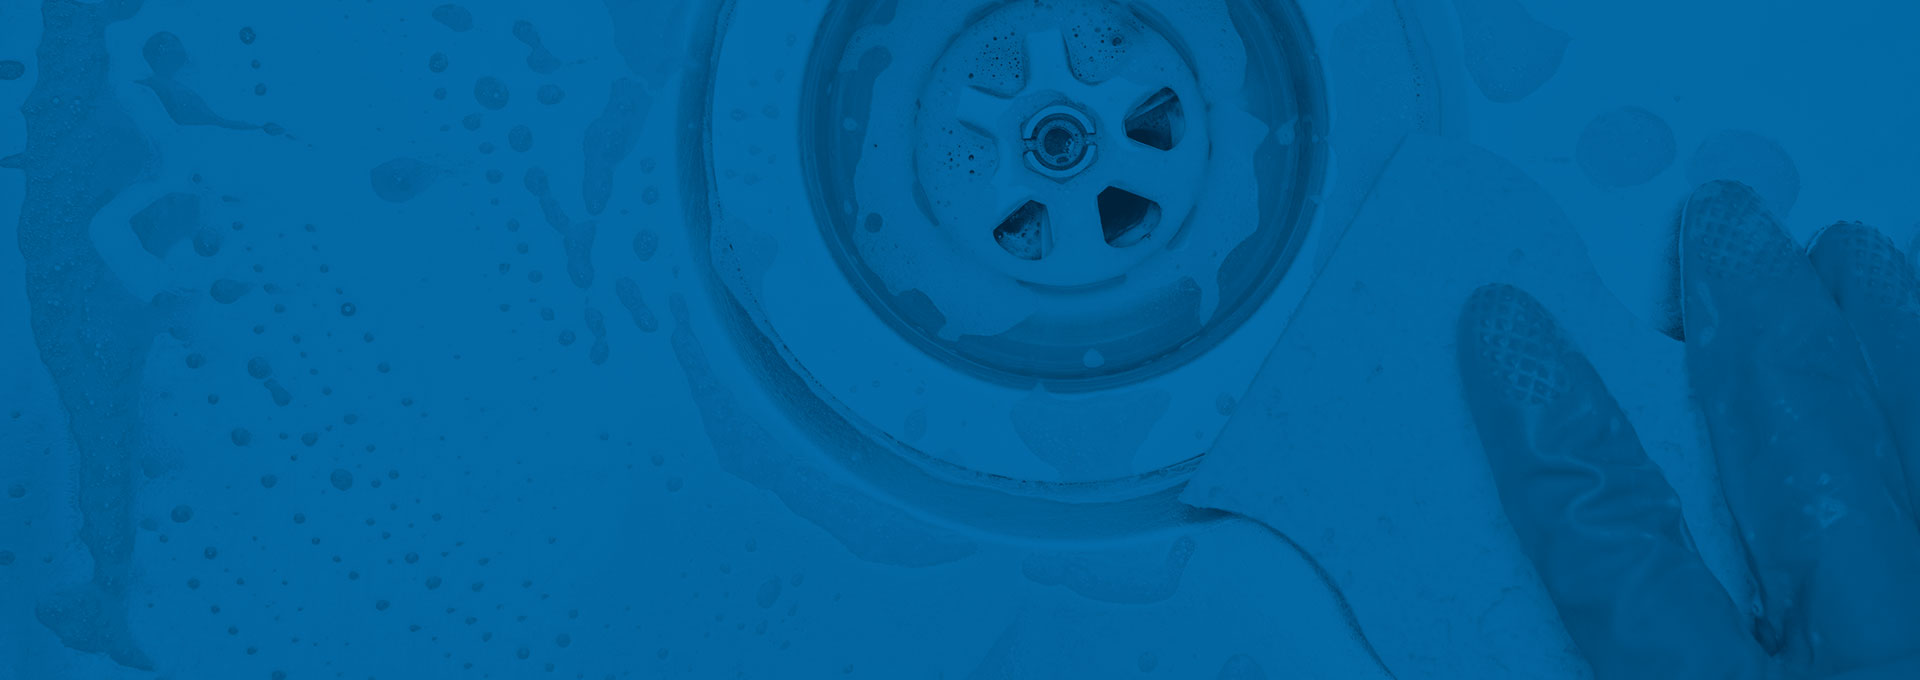 Aqua Pro: Keeping Drains Clean and Water Supplies Safe With 100% Organic Cleaning Solutions